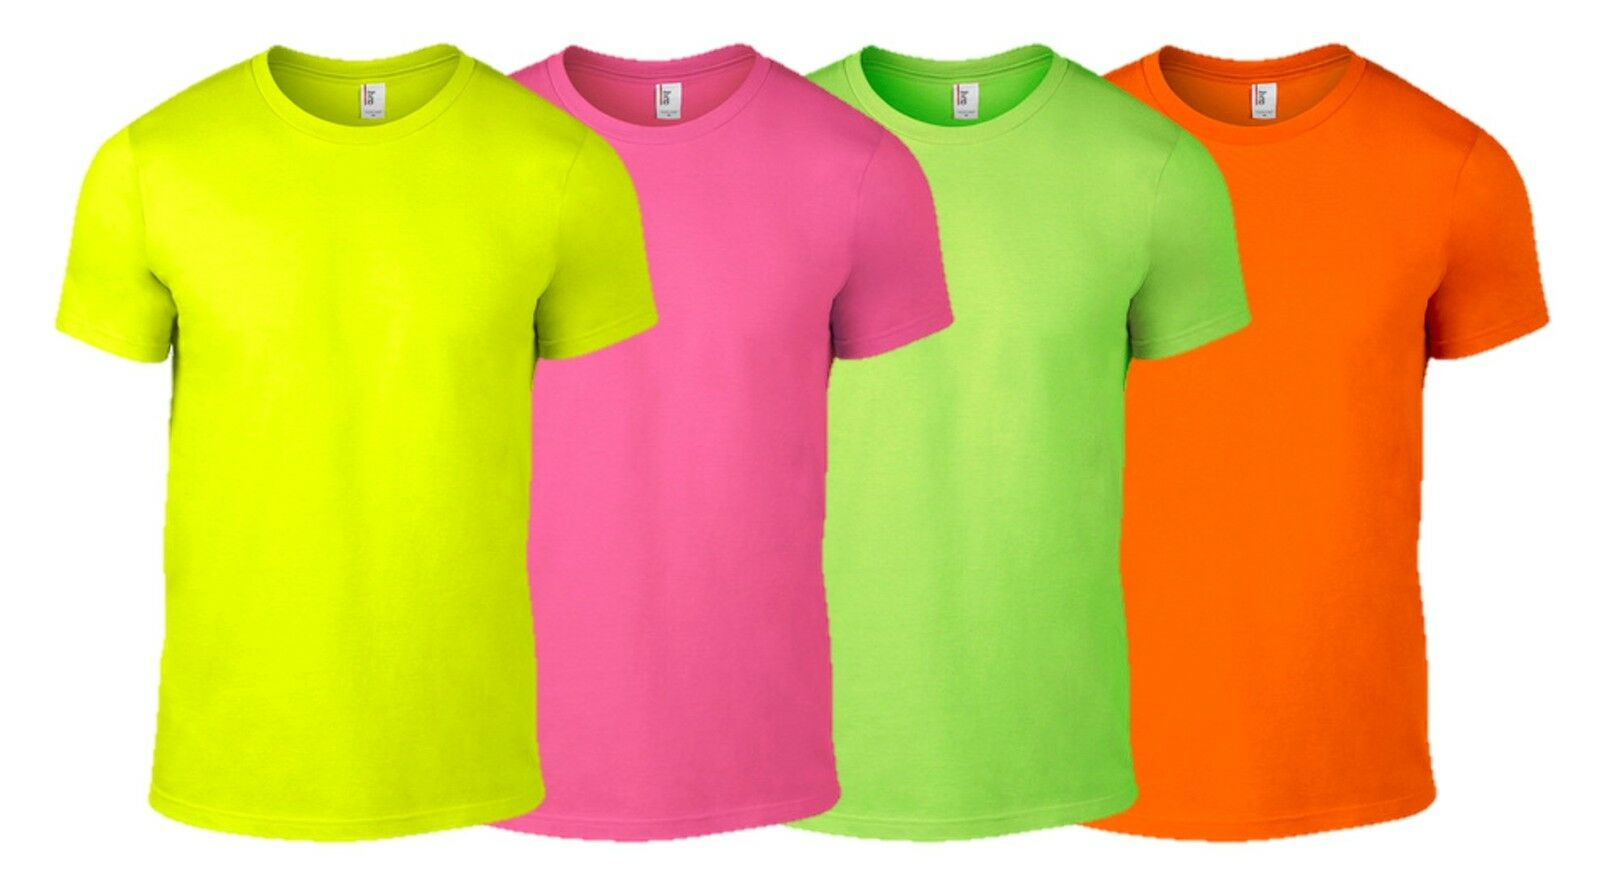 Anvil Mens Neon T Shirt S 2xl Fluorescent Bright Party